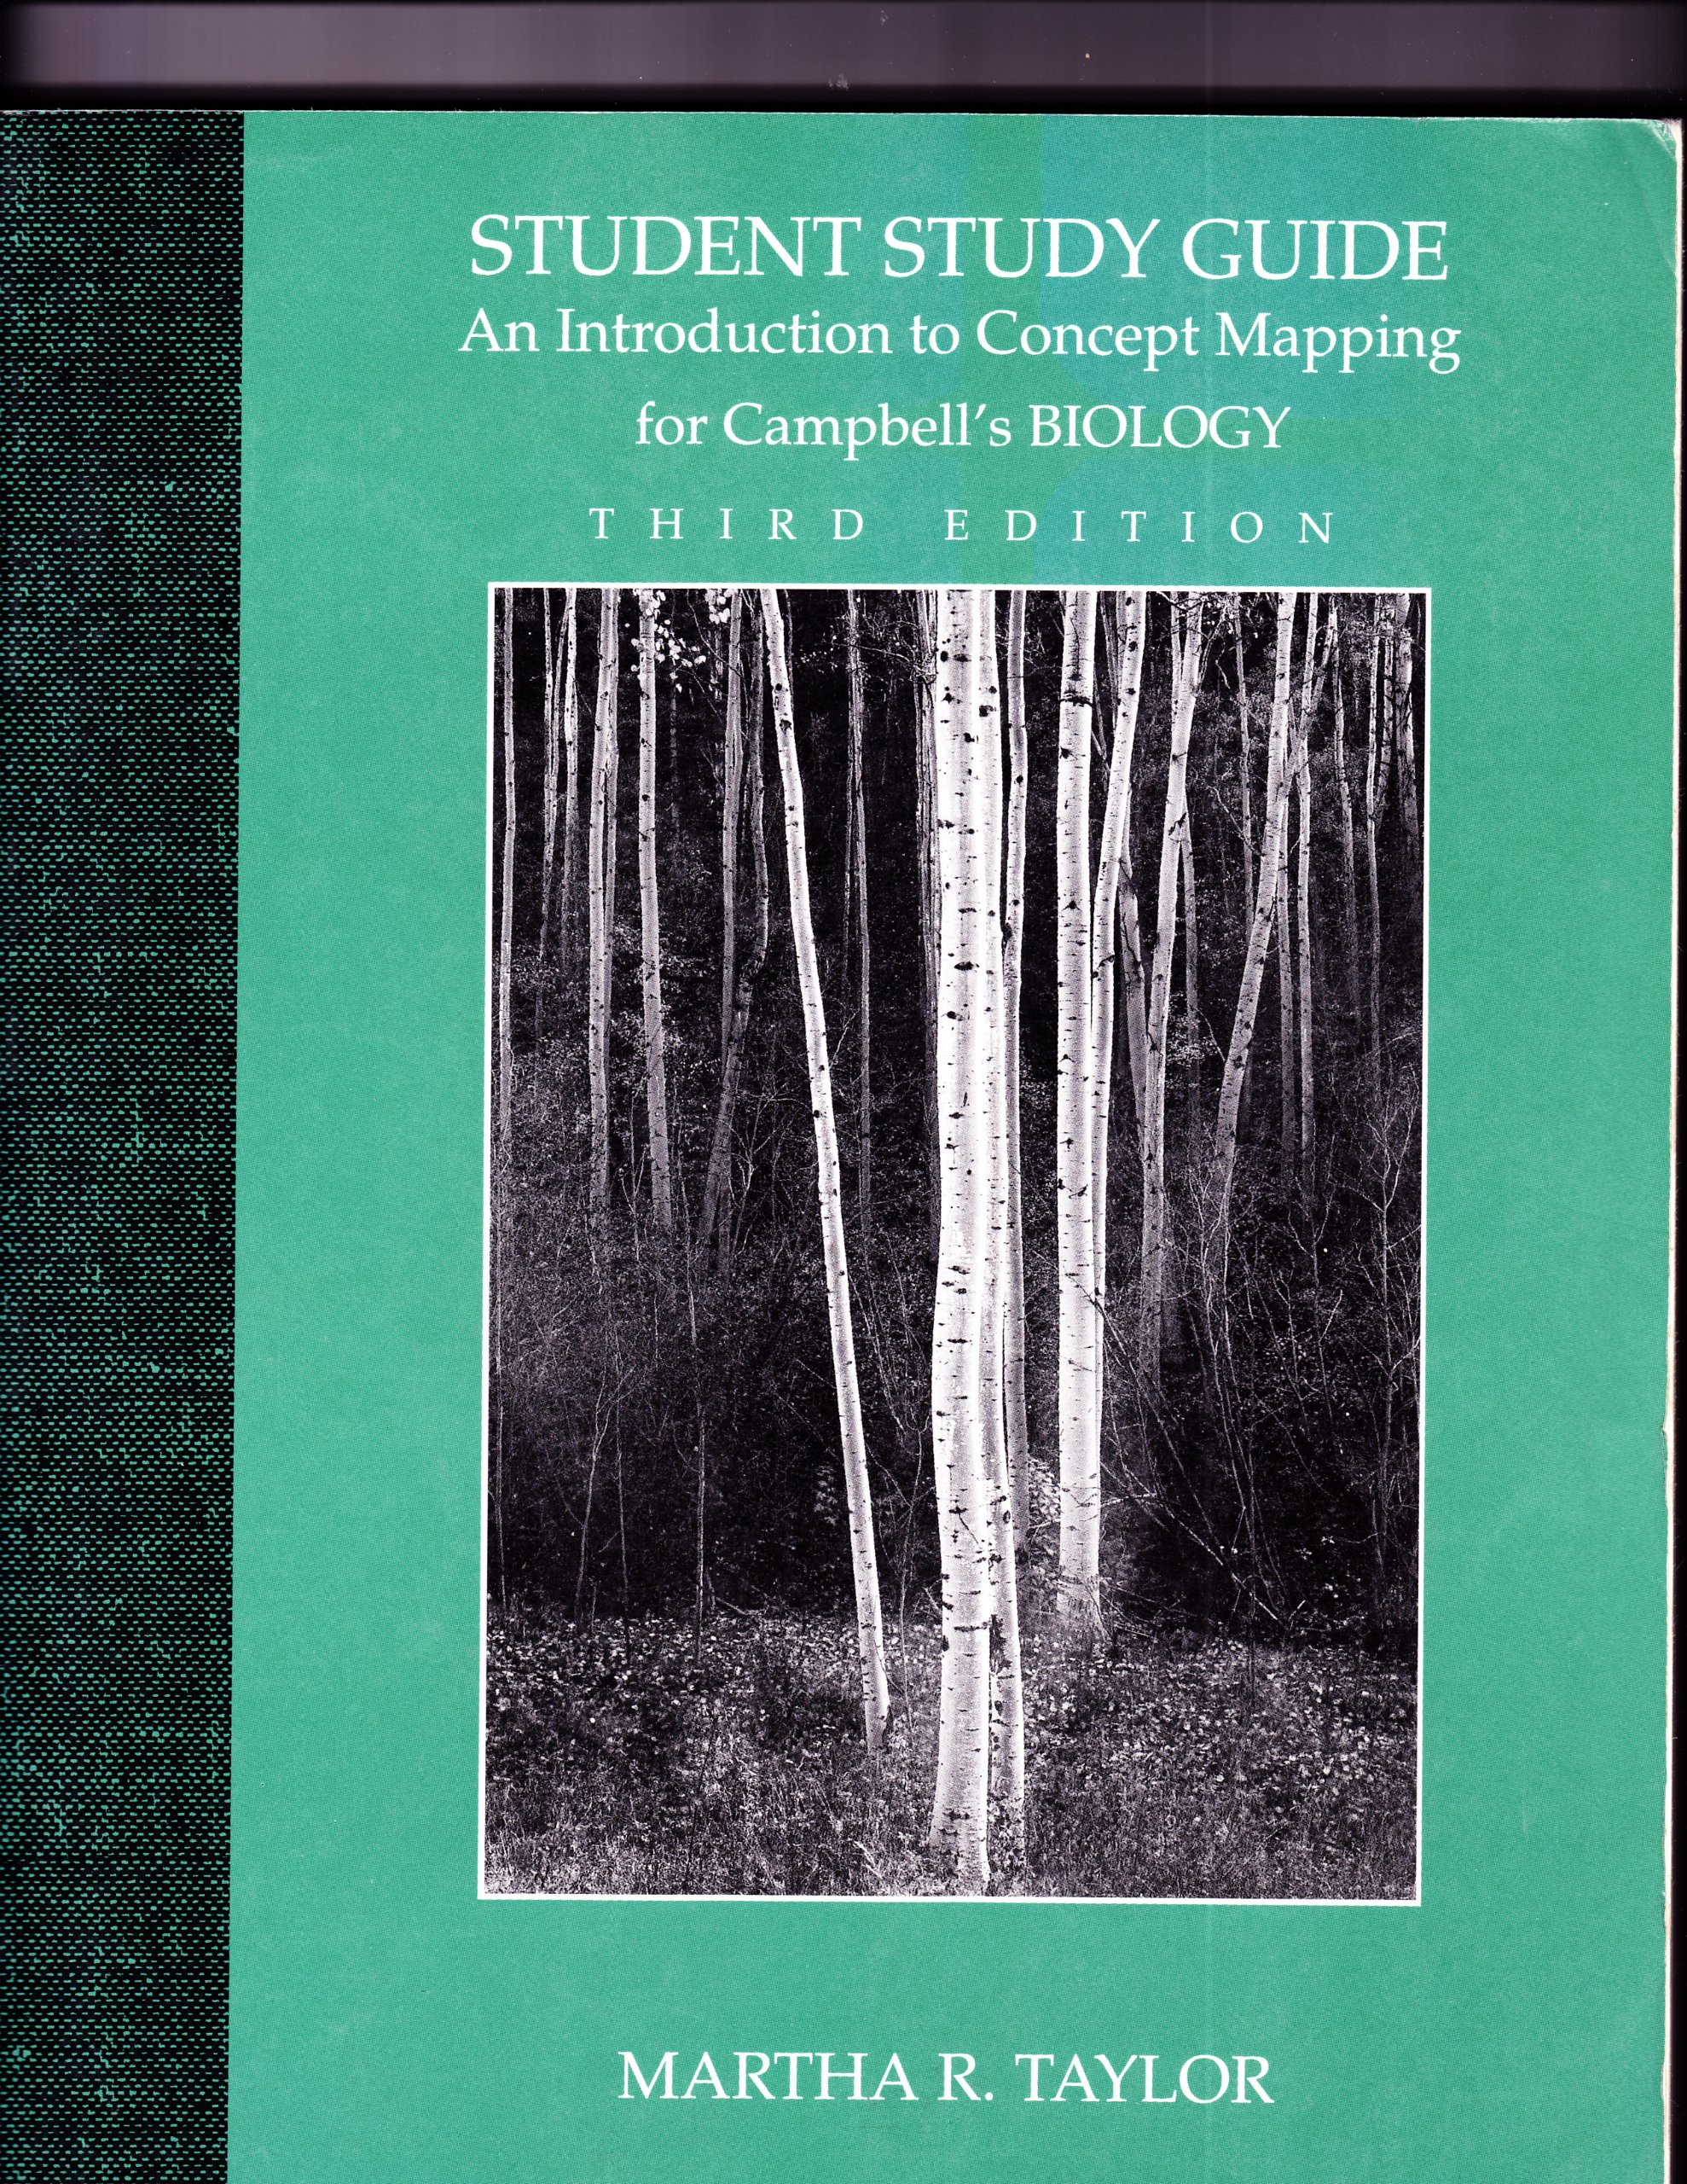 Student Study Guide: An Introduction to Concept Mapping for Campbell's  Biology: Martha R. Taylor: 9780805318814: Amazon.com: Books